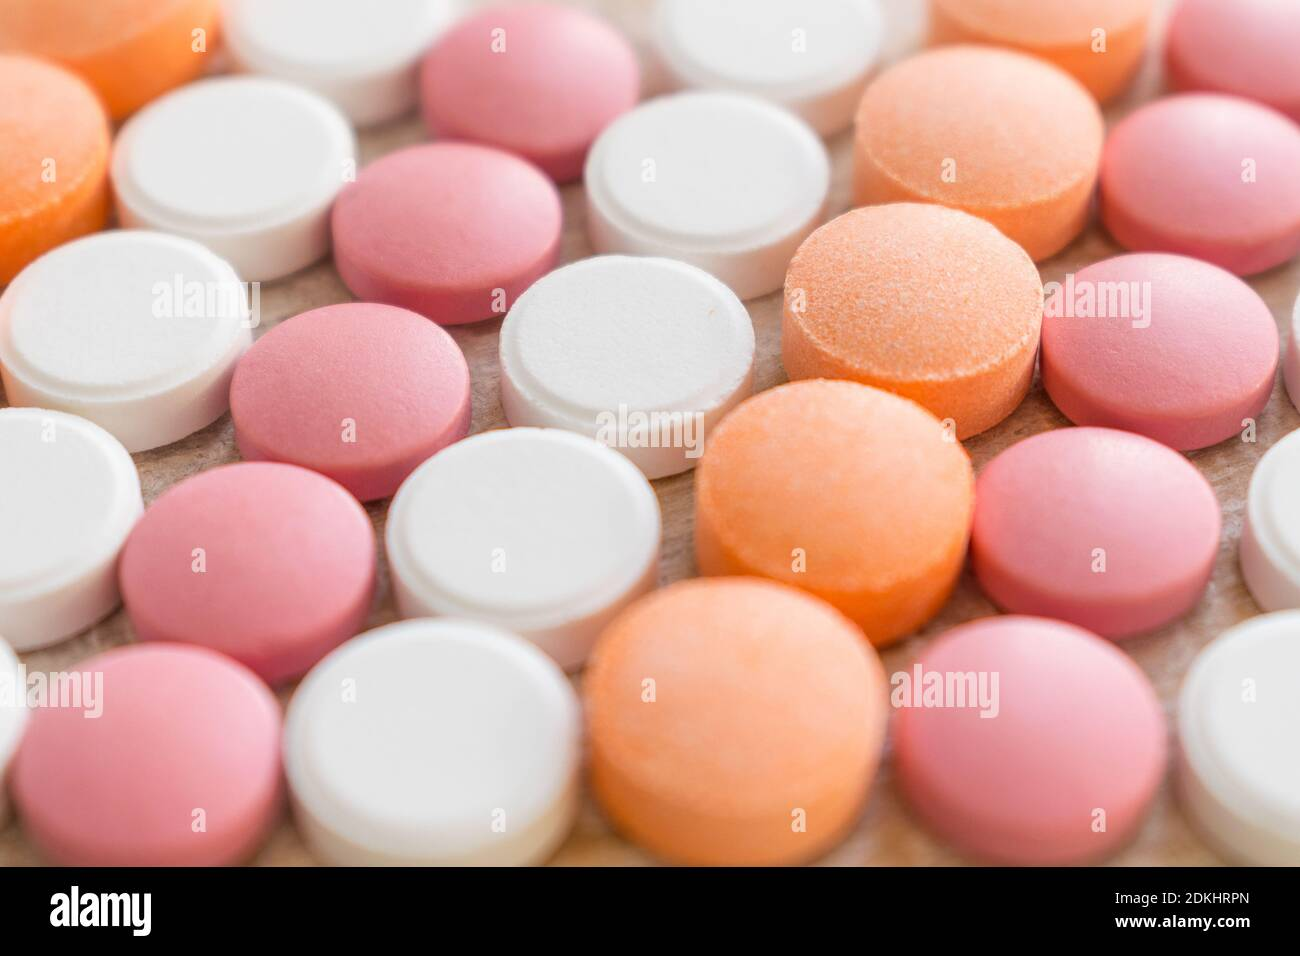 Antacids High Resolution Stock Photography And Images Alamy